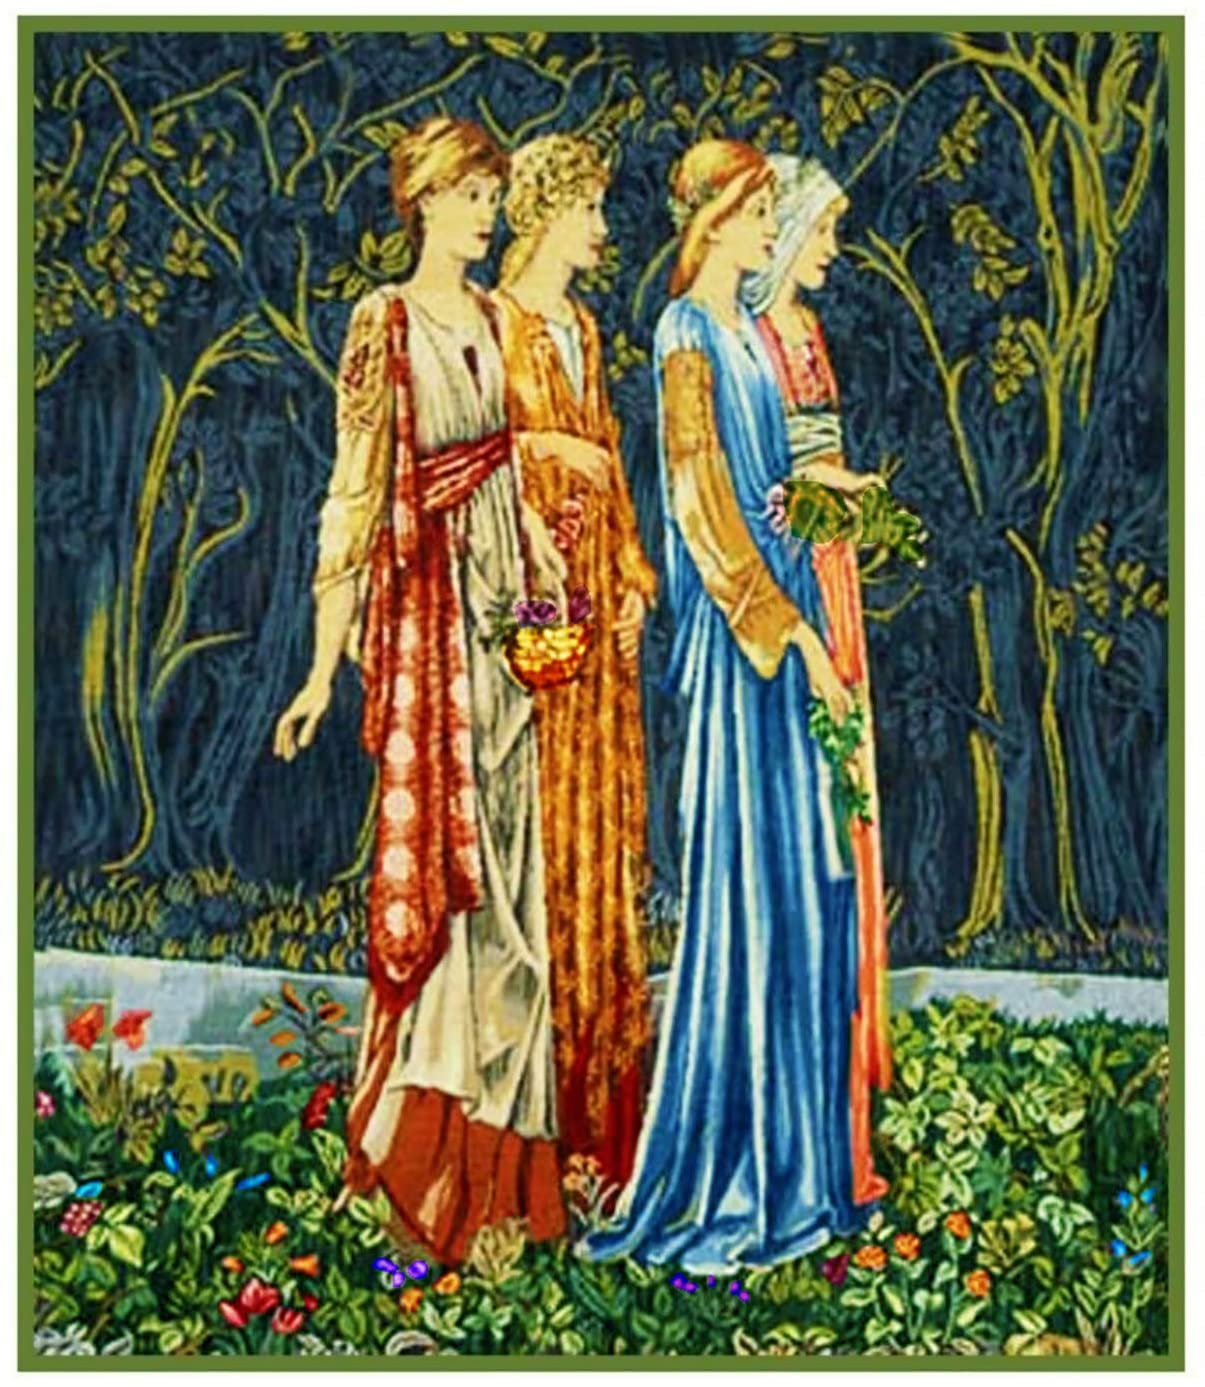 Orenco Originals The Muses Detail Ceremony William Morris Counted Cross Stitch Pattern